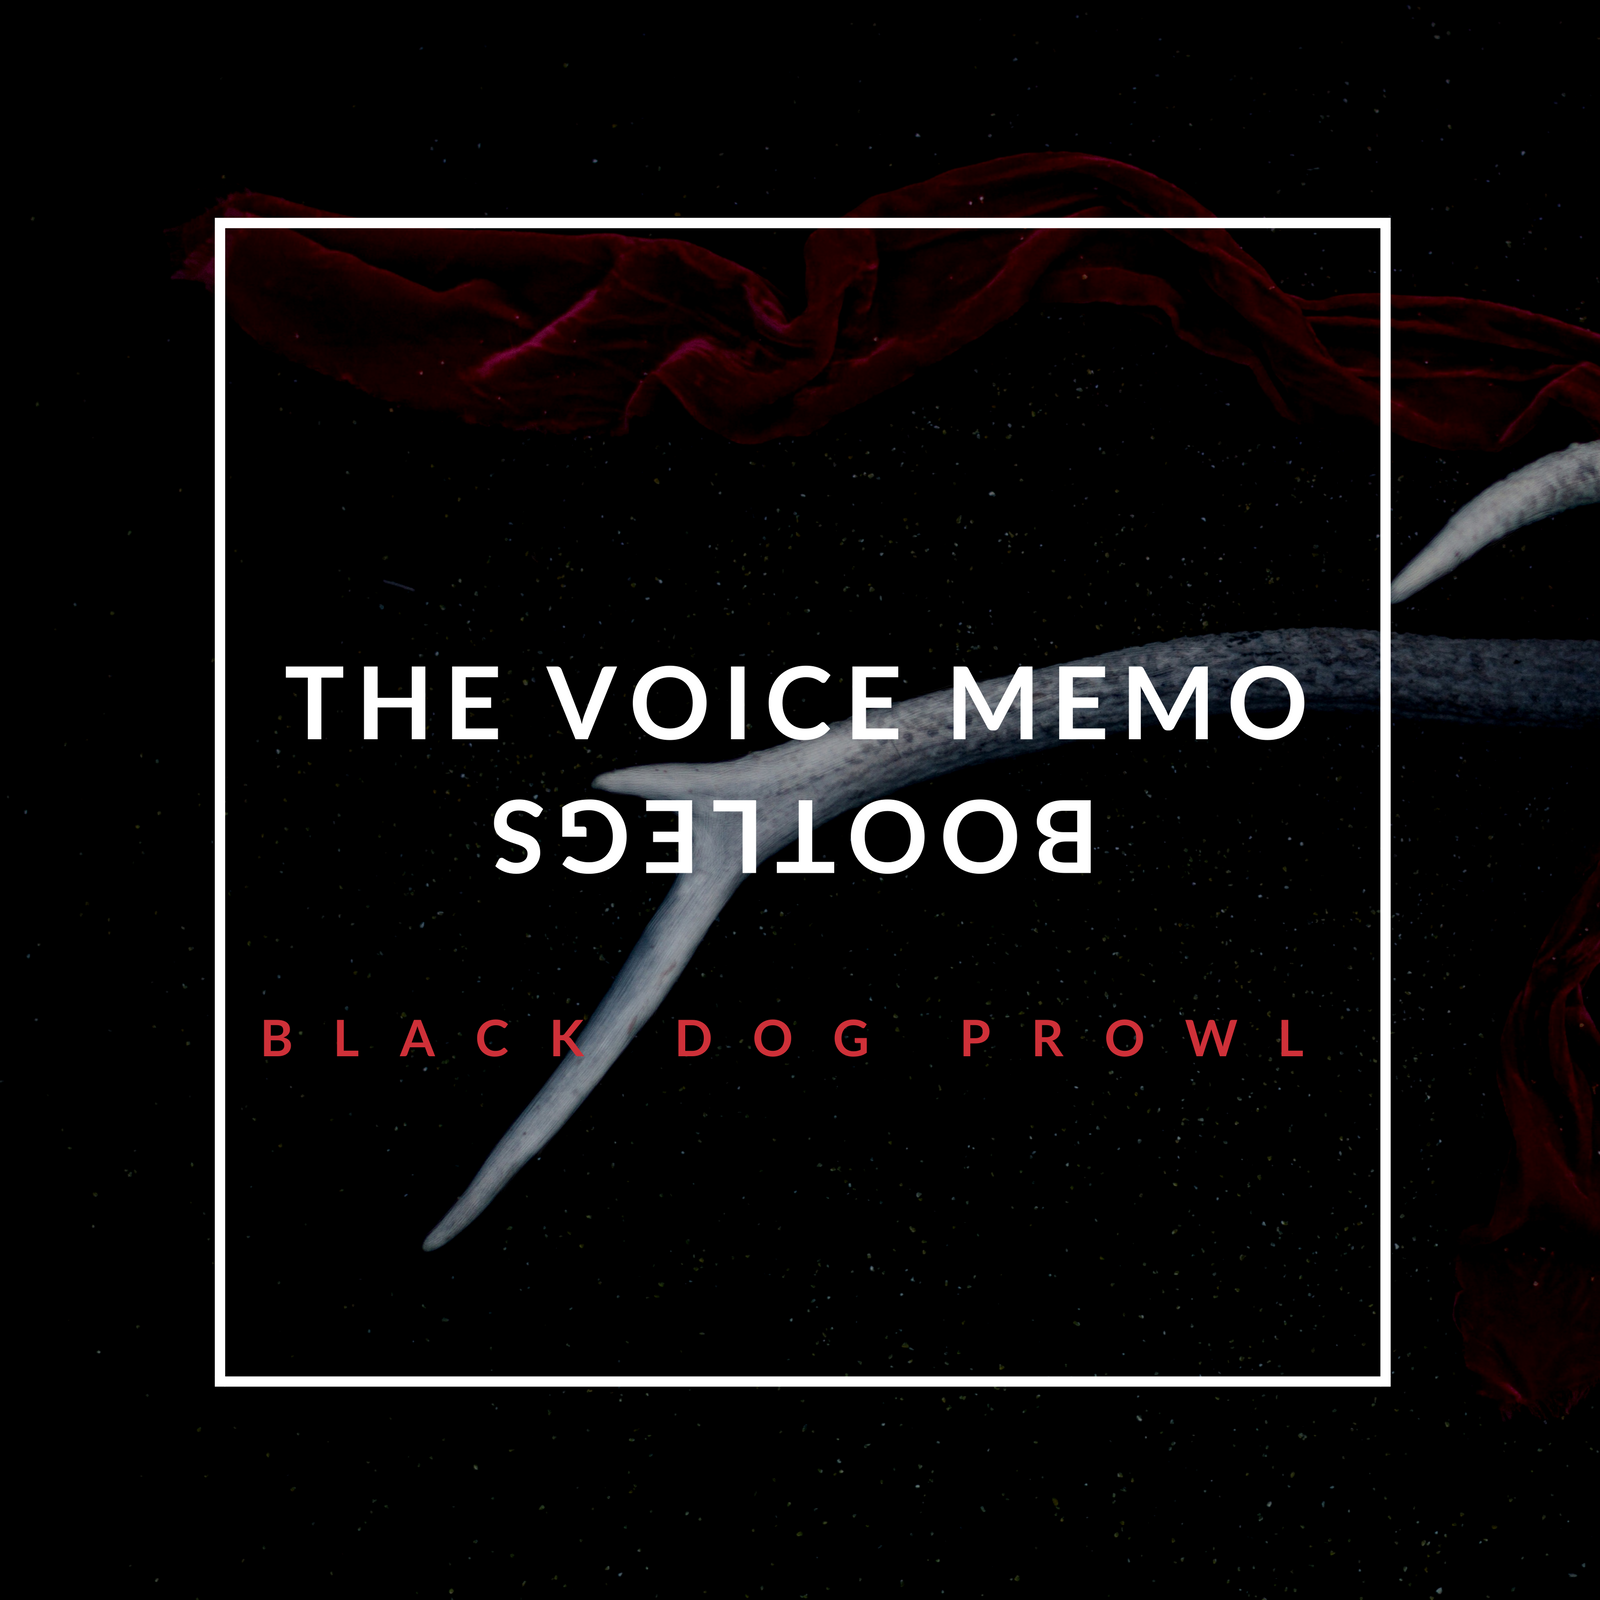 The Voice Memo Bootlegs (album cover).png